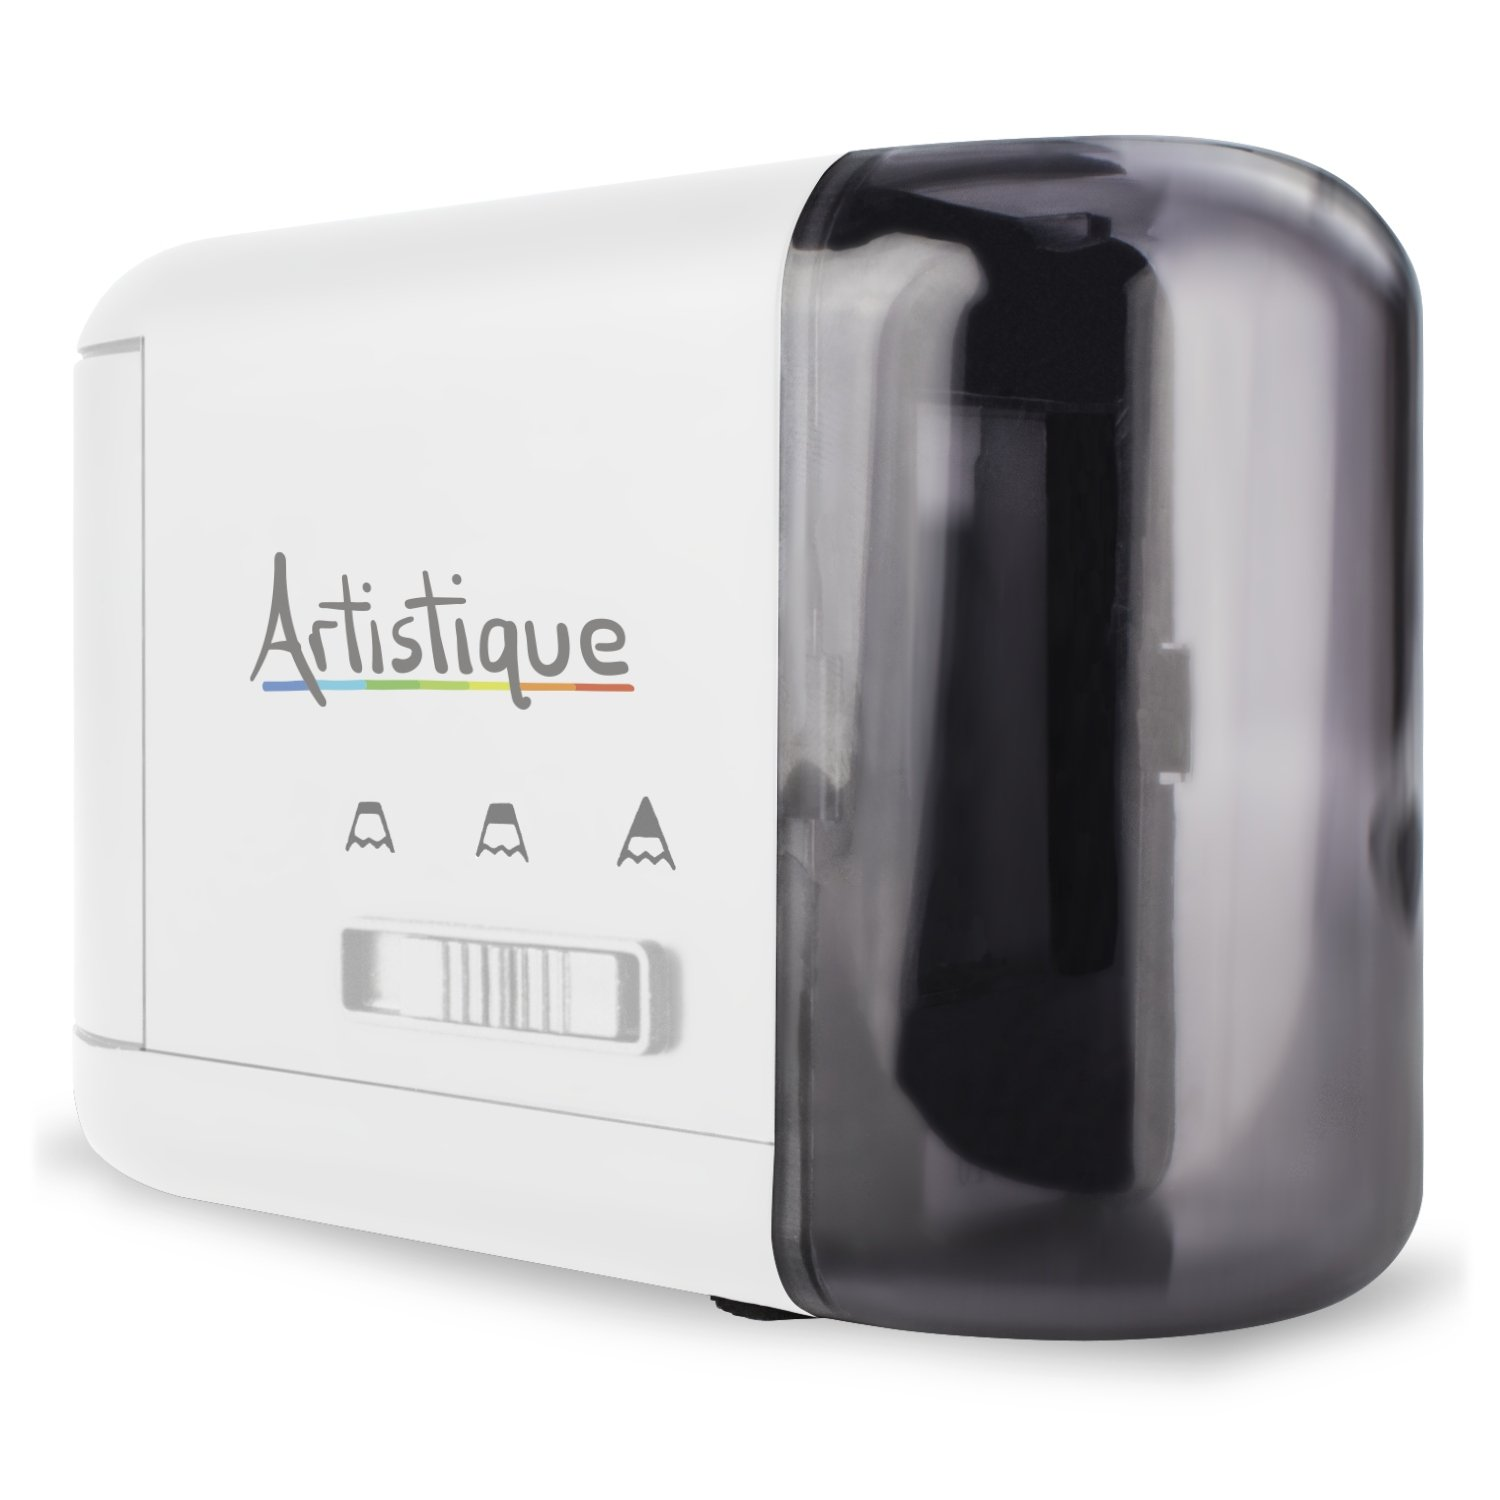 Artistique Electric Pencil Sharpener - Best Heavy-Duty Automatic Electric Pencil Sharpener for Art, Office & School - Works w/ Lead & Colored Pencils - Uses Battery or Wall Power - White